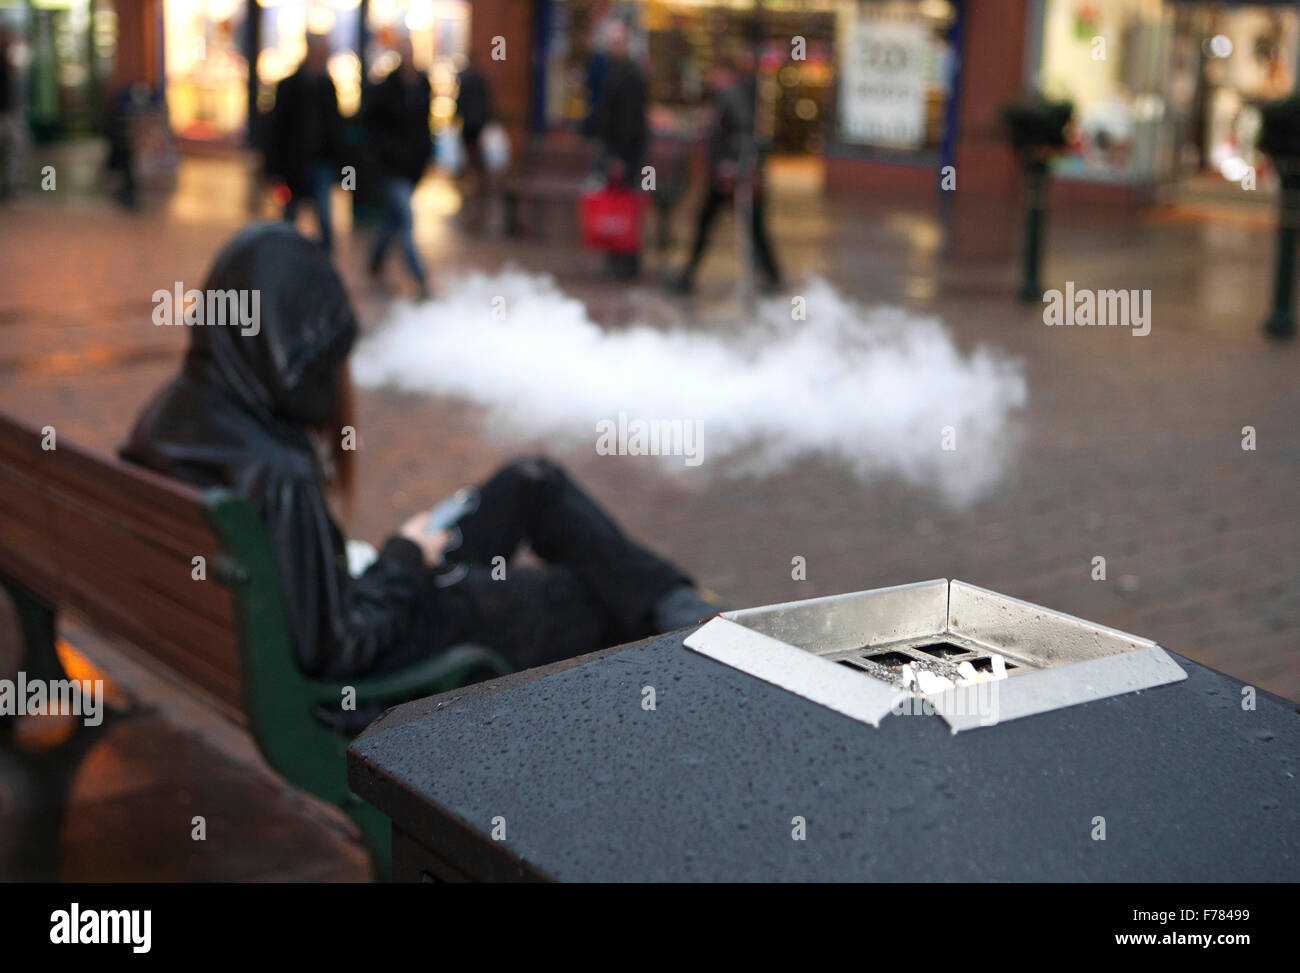 Large cloud of vapour issued by seated man smoking an e-cigarette in Oldham, Lancashire, UK - Stock Image